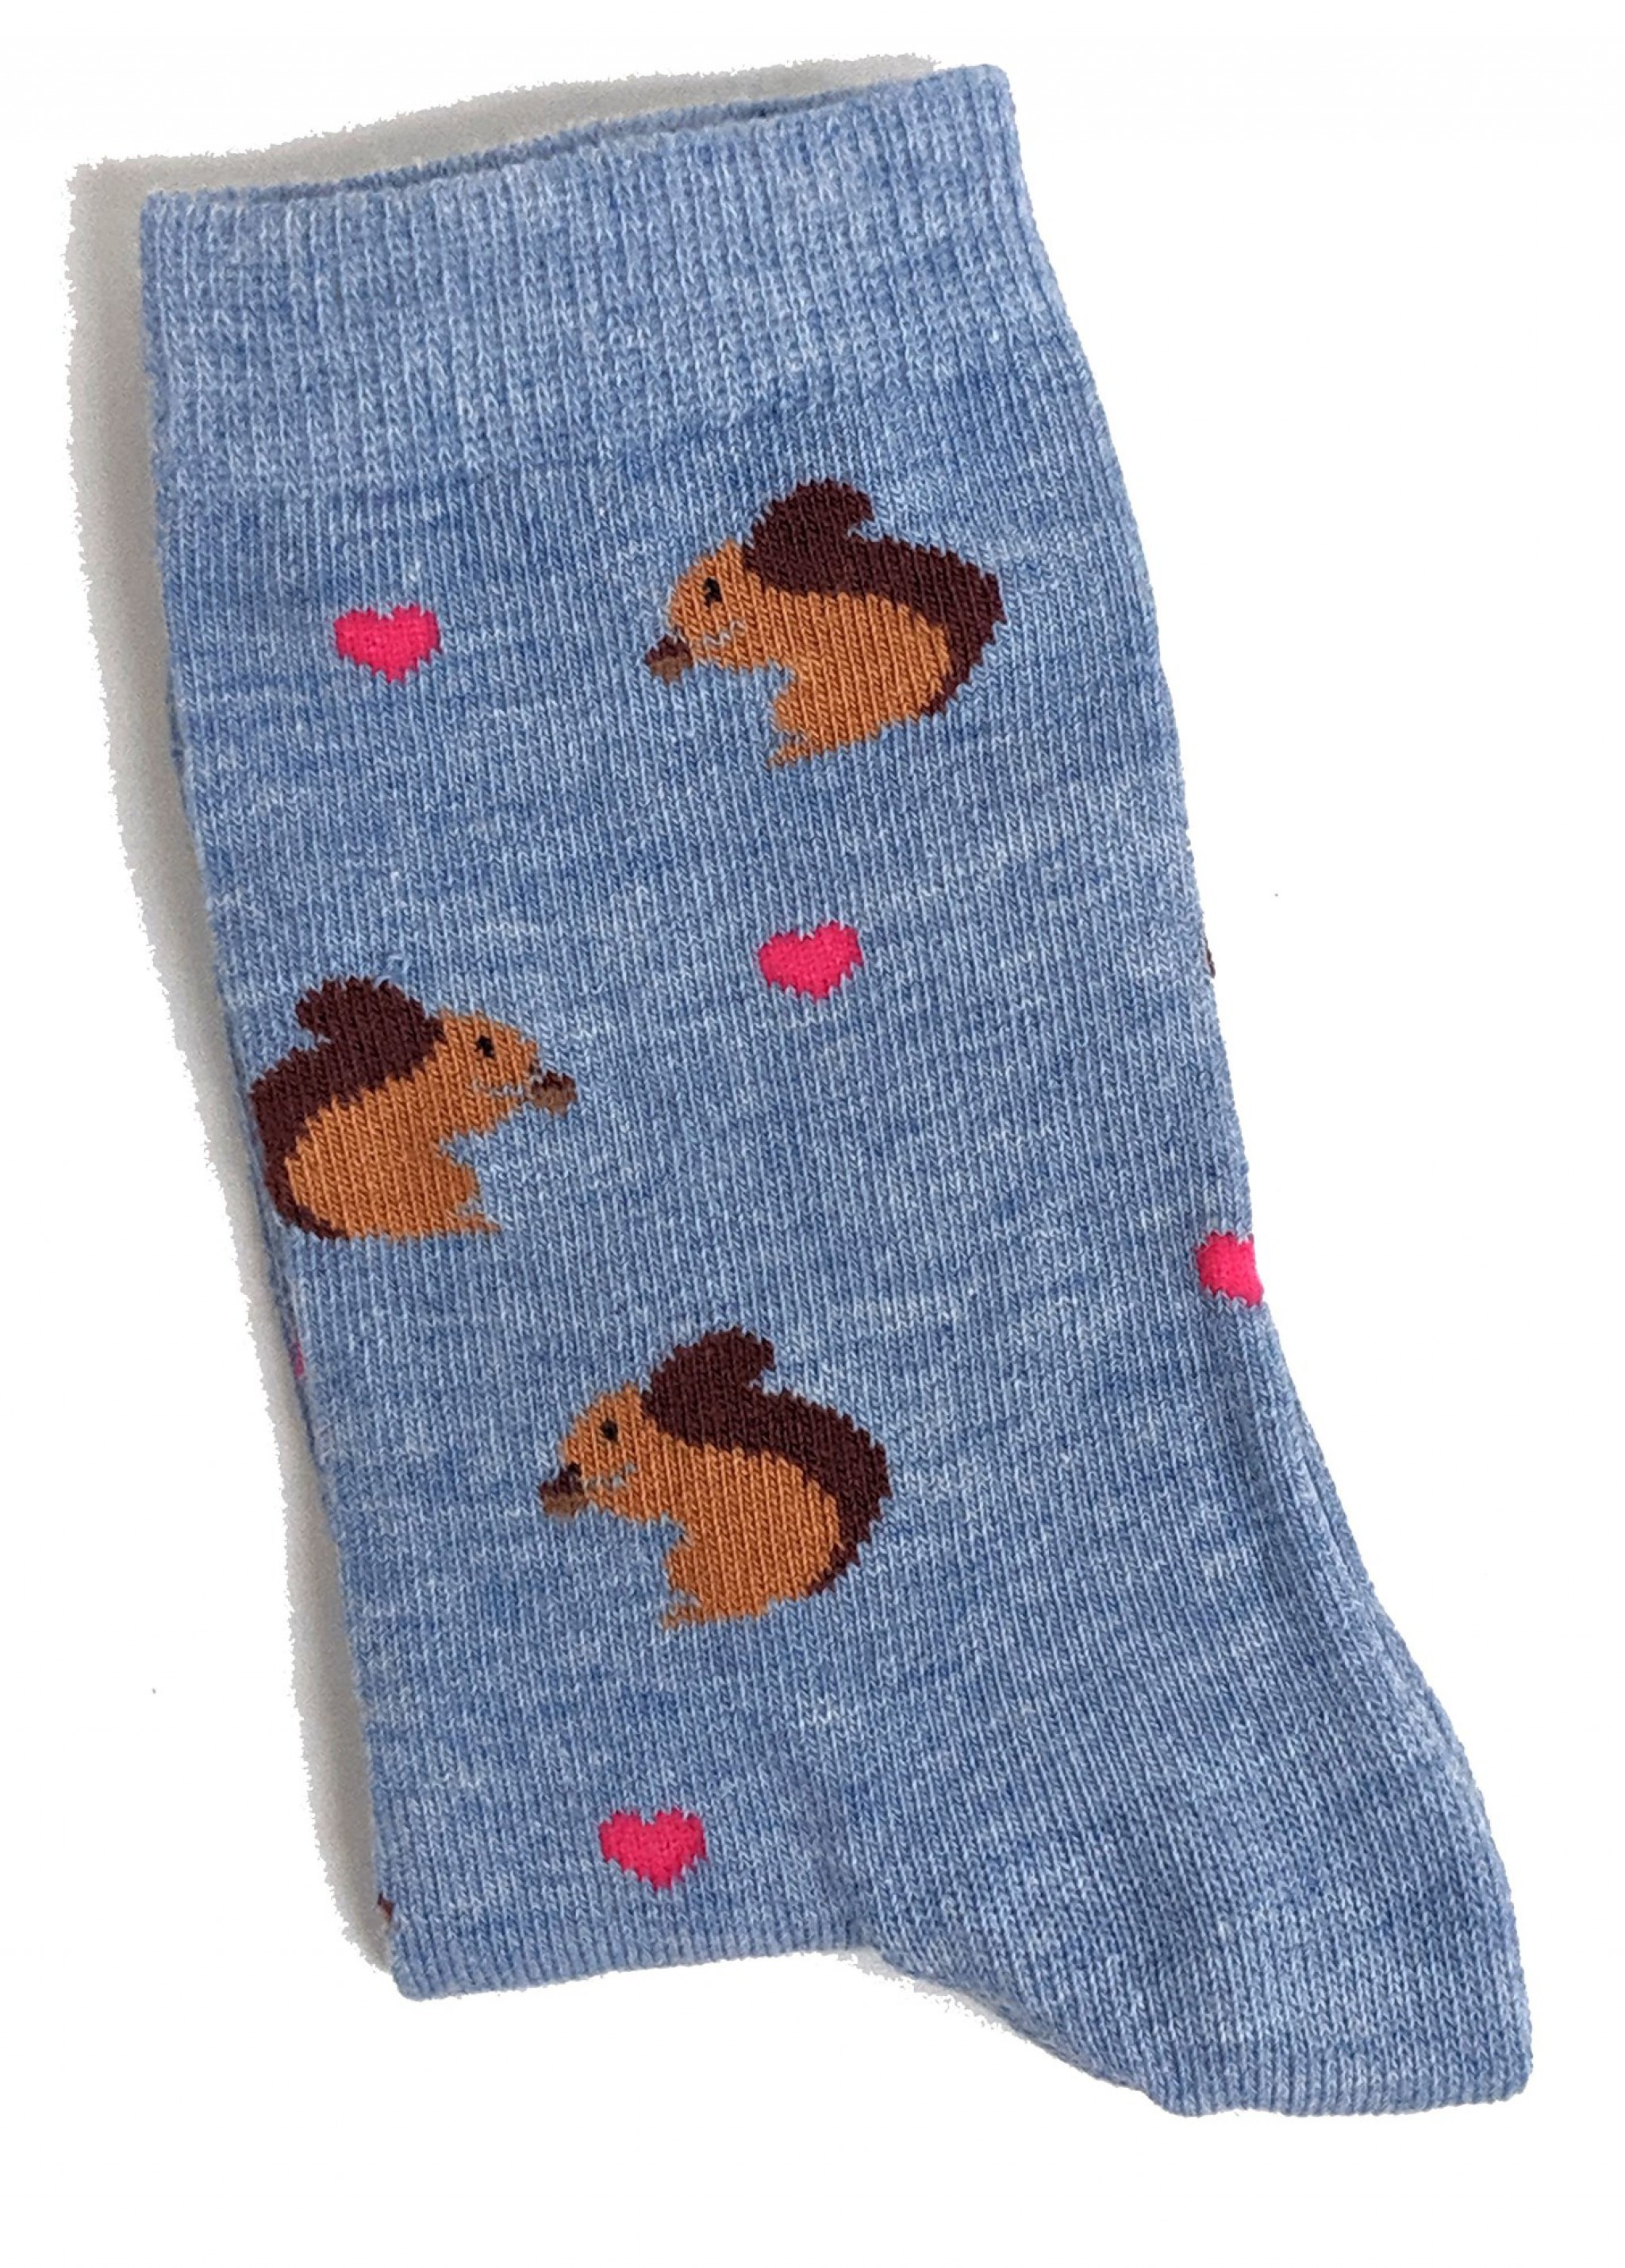 37-42 Eur Ladies Scurry Of Squirrels Midnight Blue Socks 4-8 UK 6-10 US